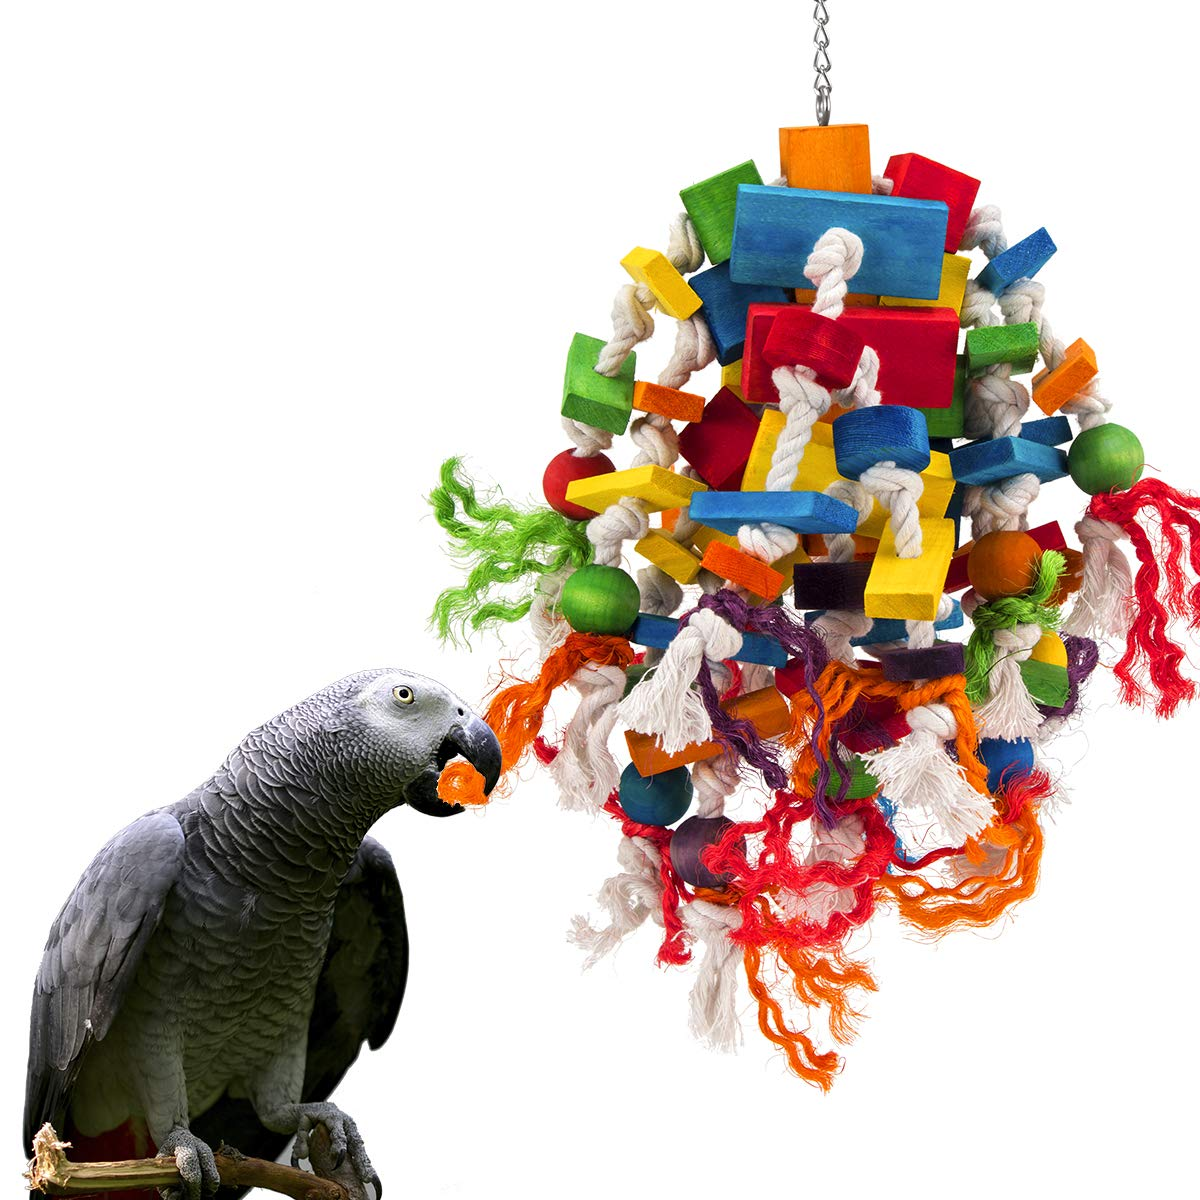 MEWTOGO Large Parrot Toy - Multicolored Wooden Blocks Tearing Toys for Birds Suggested for African Grey Cockatoos, and a Variety of Amazon Parrots.